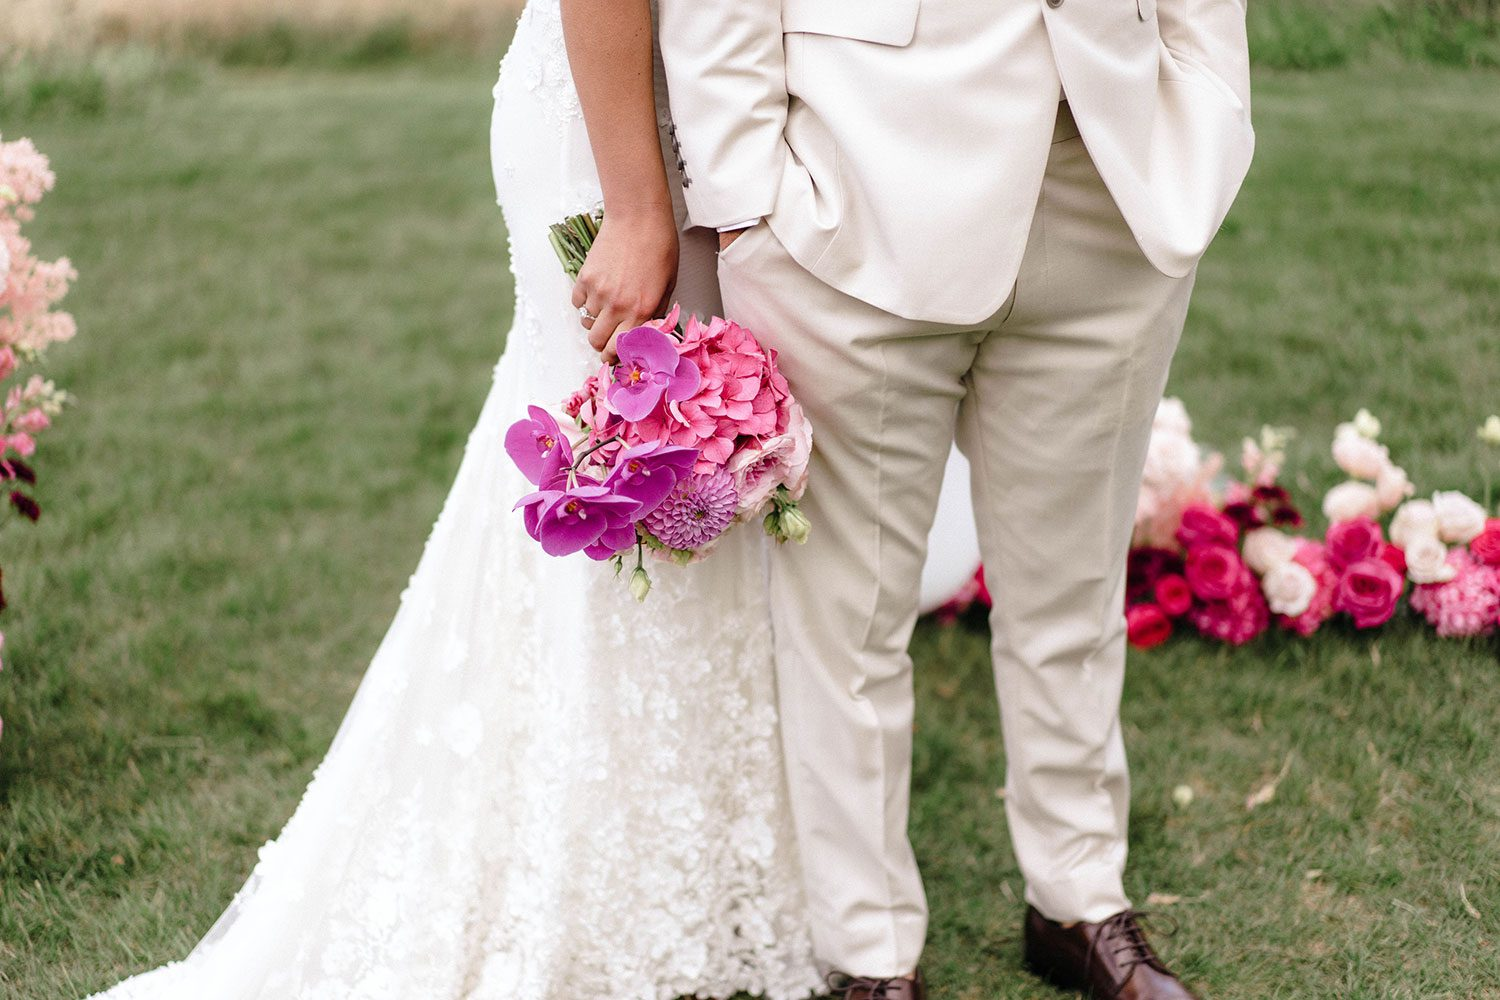 Bride wears bespoke E'More lace gown with boned bodice with hand beaded flower applique and full lace train by Auckland wedding dress maker Vinka designs - half shot with groom and bouquet